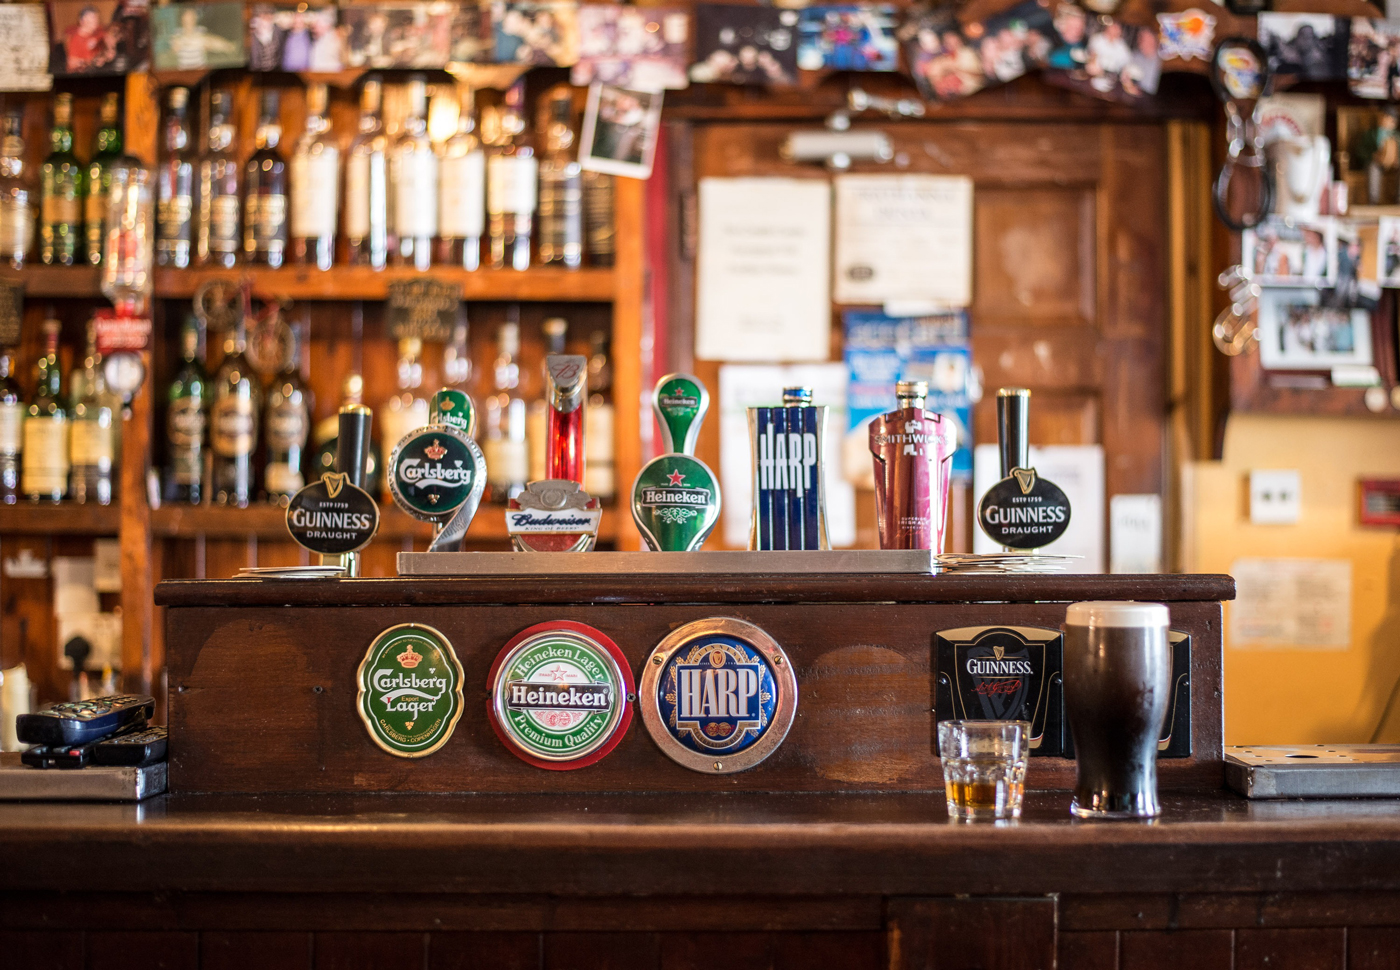 Various beers on tap at the bar of a traditional pub